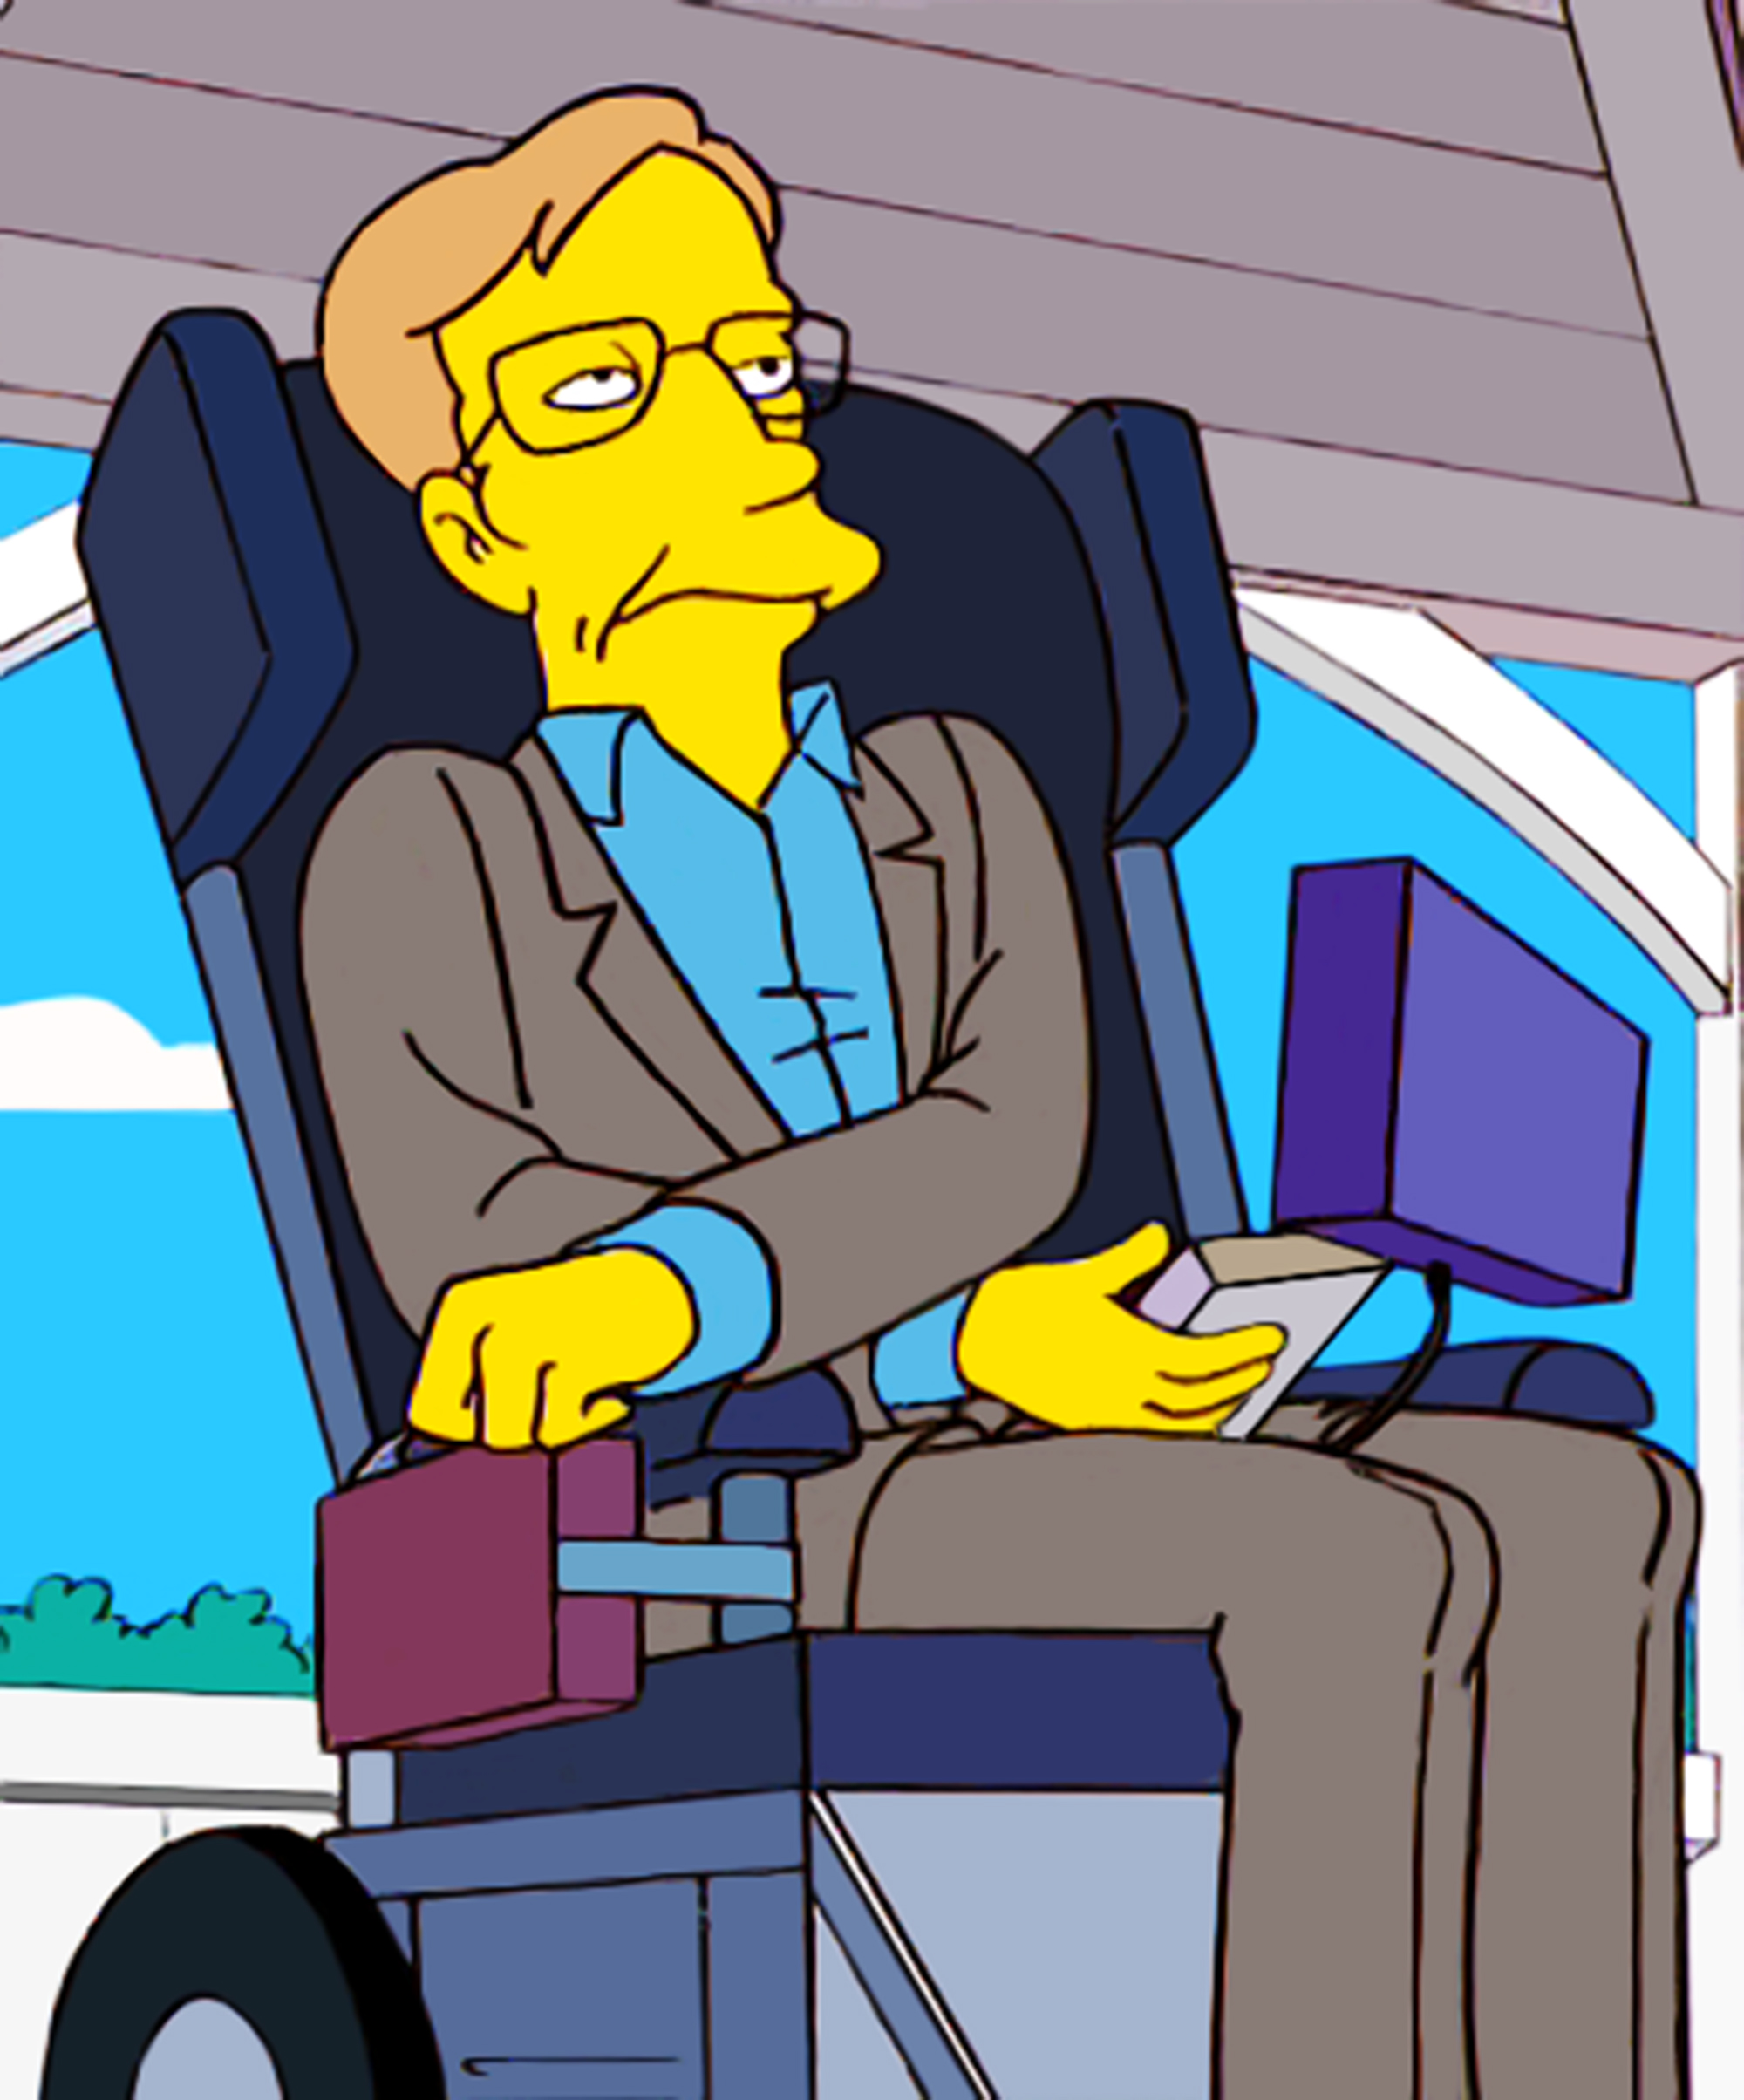 """<b>Stephen Hawking:</b> The theoretical physicist first paid Springfield a visit in the 1999 episode """"They Saved Lisa's Brain,"""" in which, playing himself, he is summarily unimpressed by the improvements to the town made by Lisa and her MENSA compatriots. He went onto make three more appearances as himself: """"Don't Fear the Roofer"""" in 2005, """"Stop or My Dog Will Shoot!"""" in 2007, and """"Elementary School Musical"""" in 2010."""